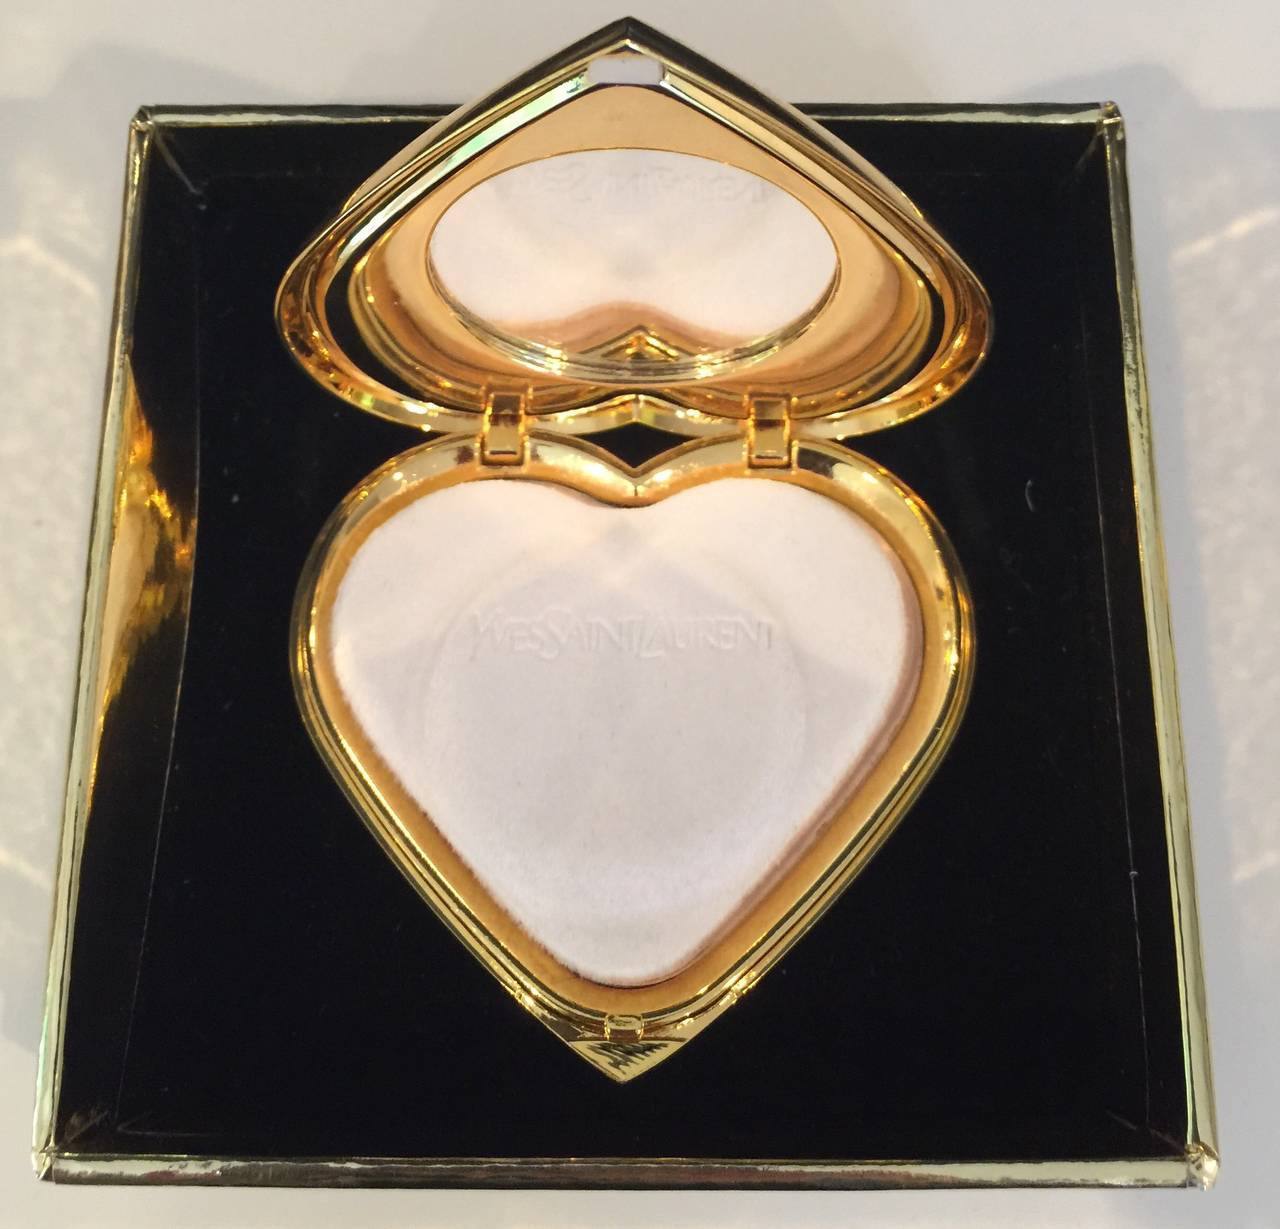 f0922833bc5 Yves Saint Laurent Paris Dazzling Ruby Crystal Jewel Heart Compact YSL New  In New Condition For